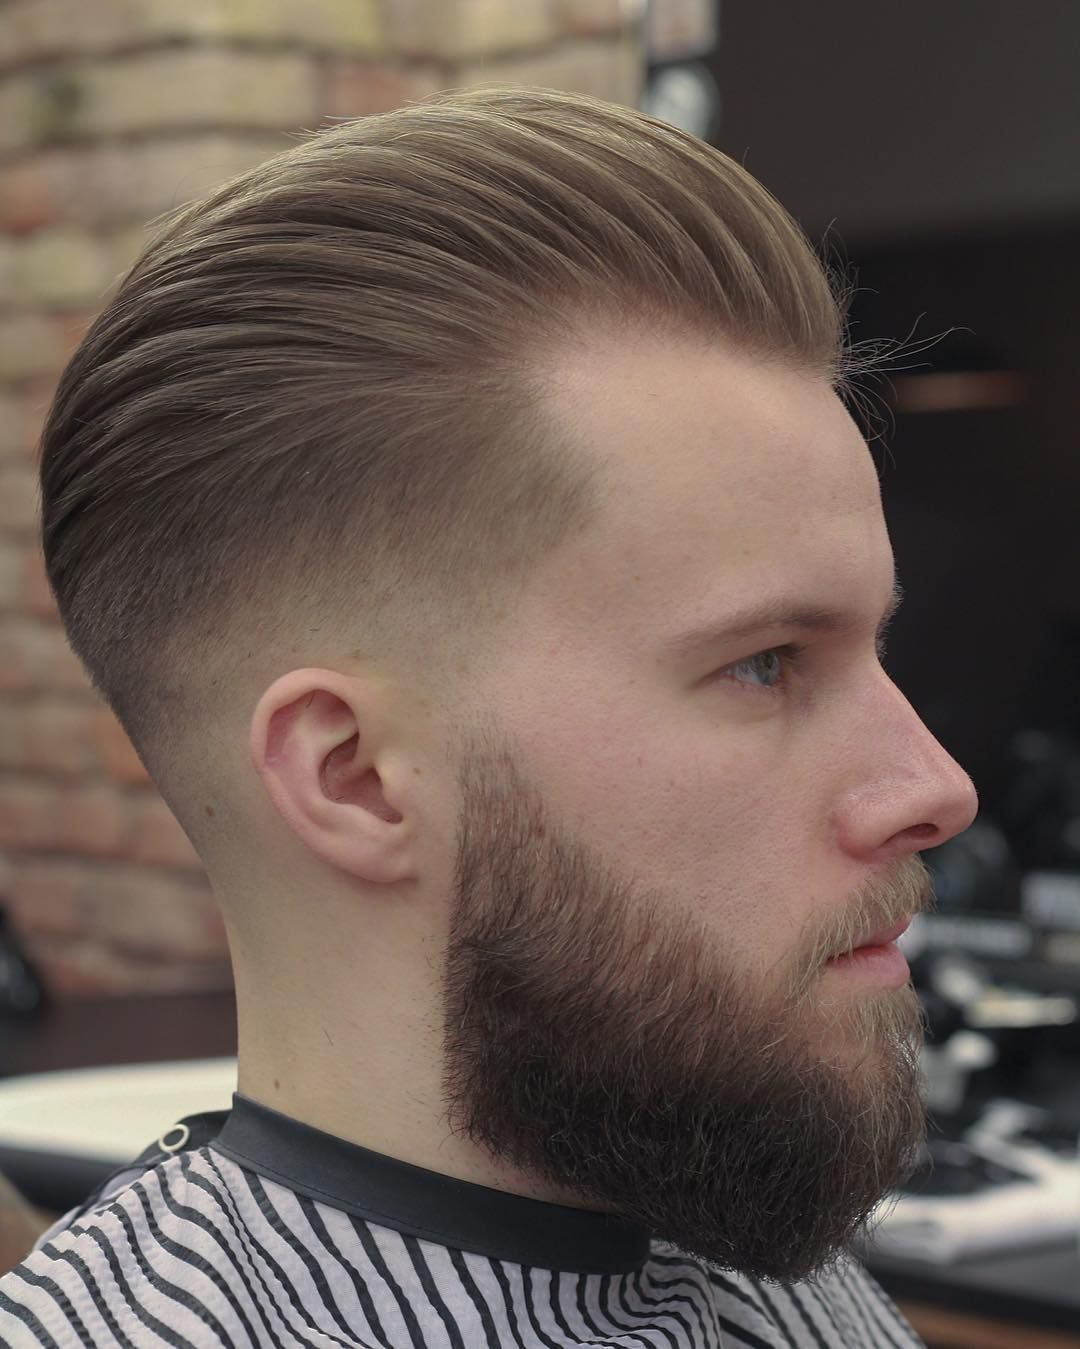 Top 4 Mens Haircuts Near Me - Easy Hairstyles  Acconciatura